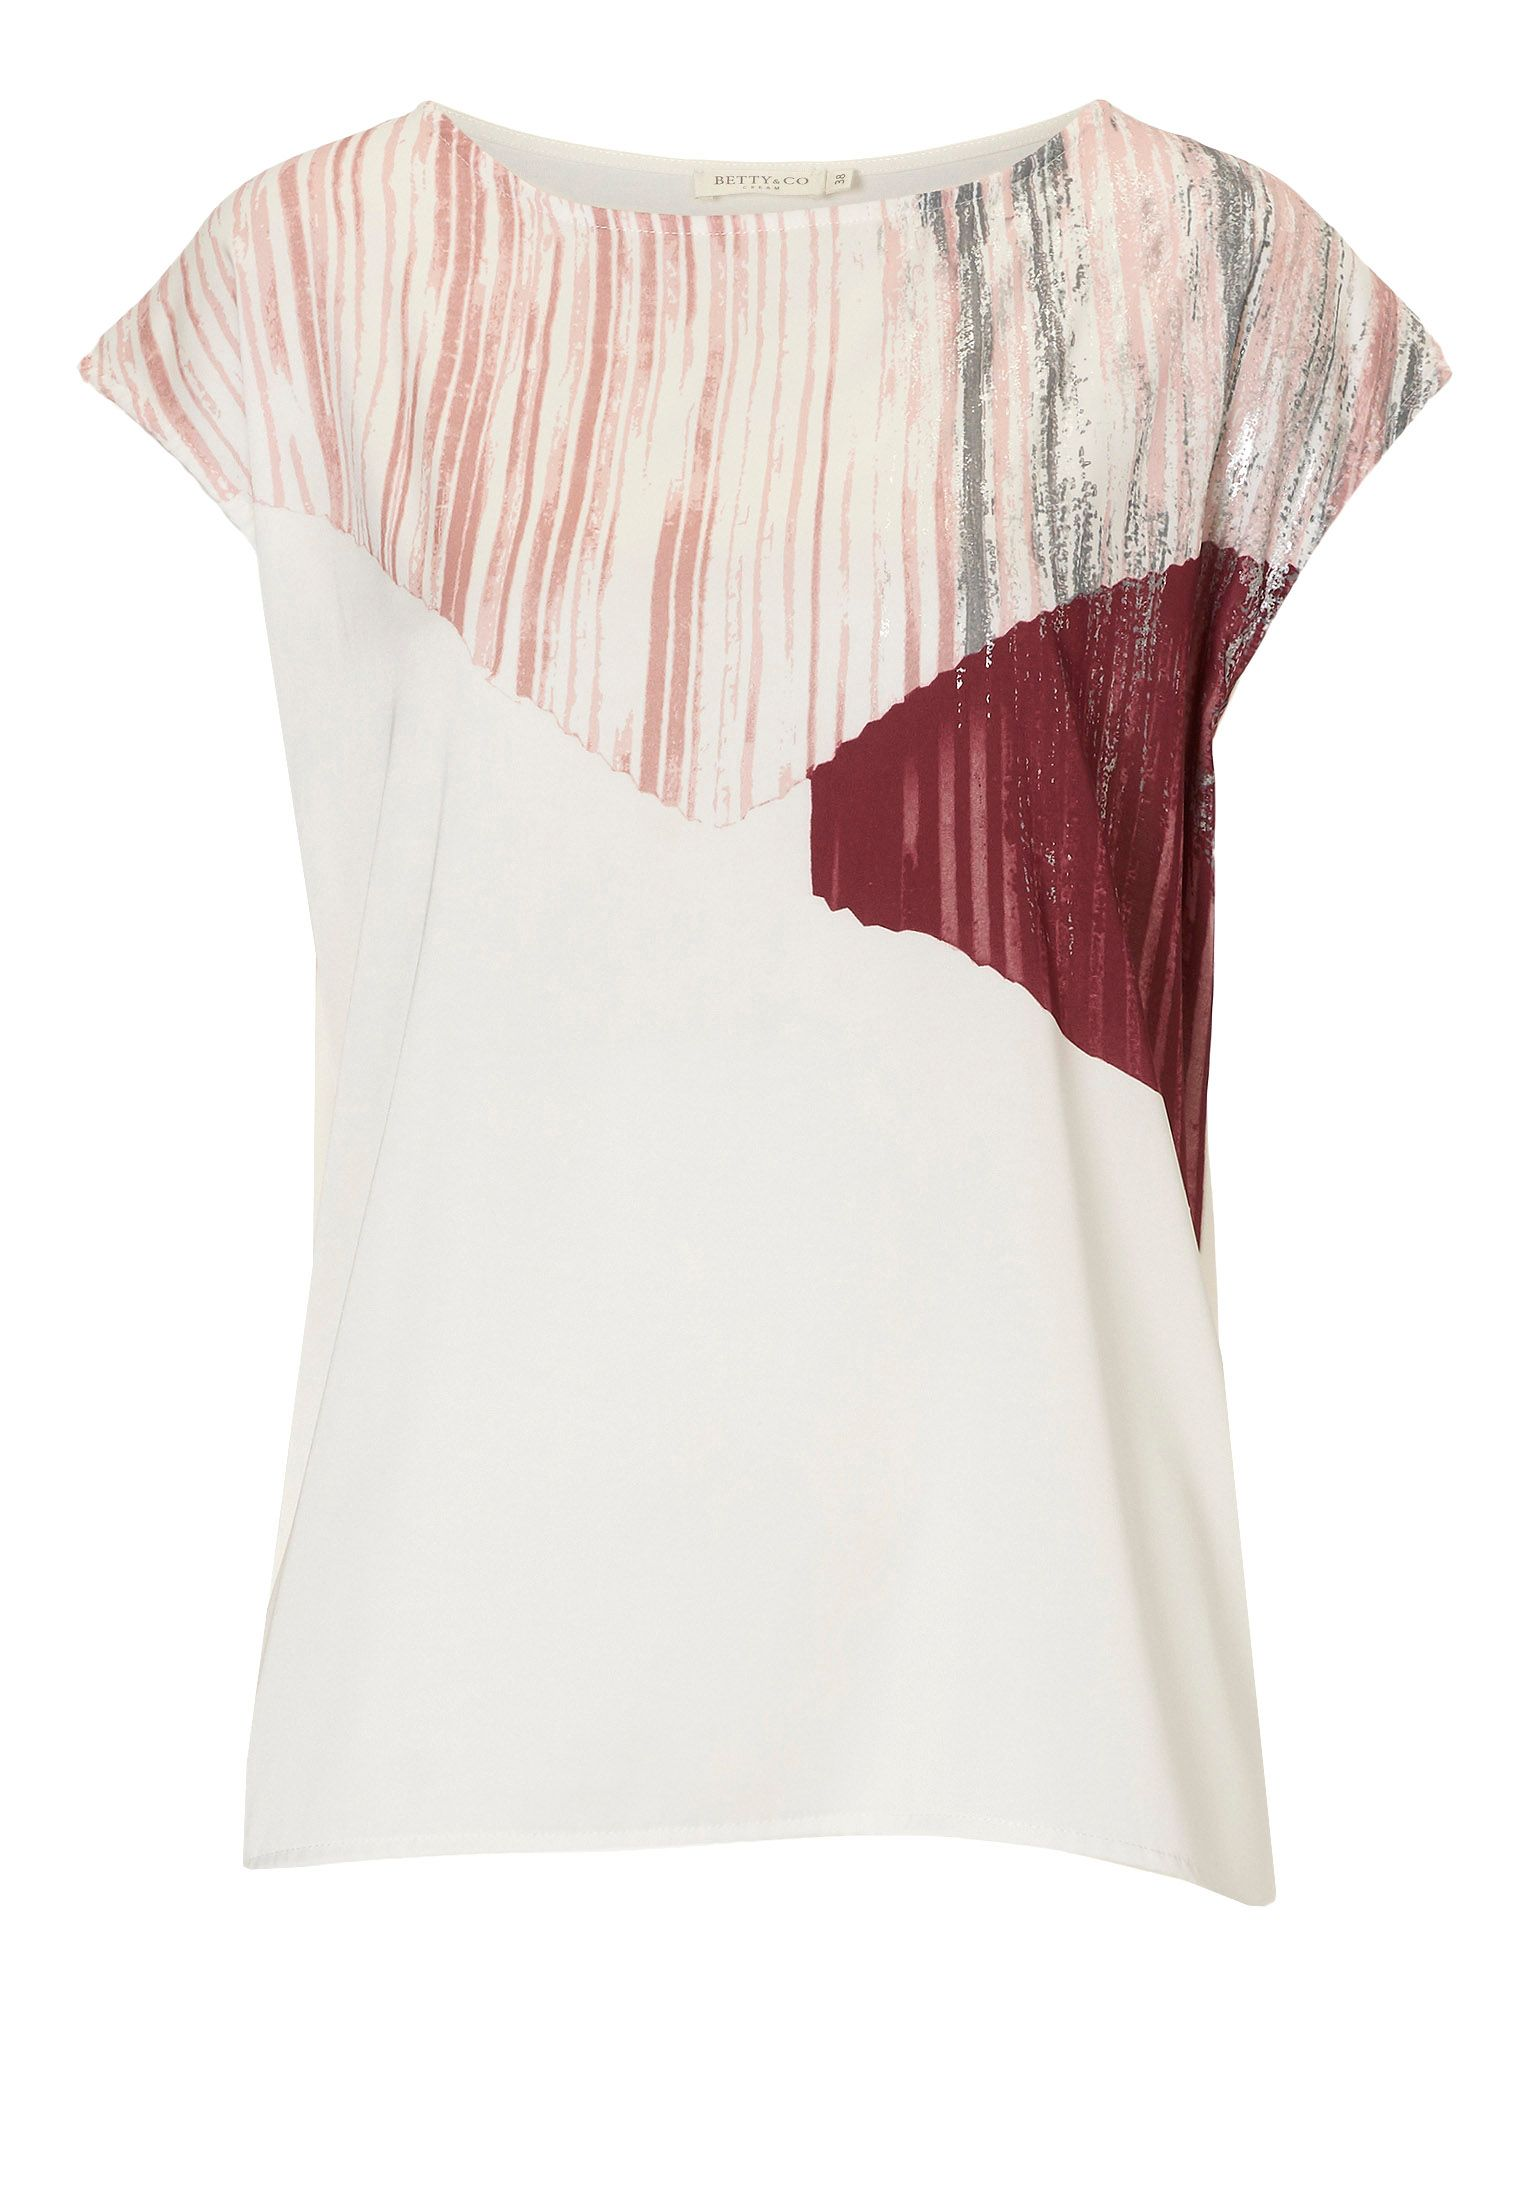 Betty & Co. Graphic print top, Multi-Coloured